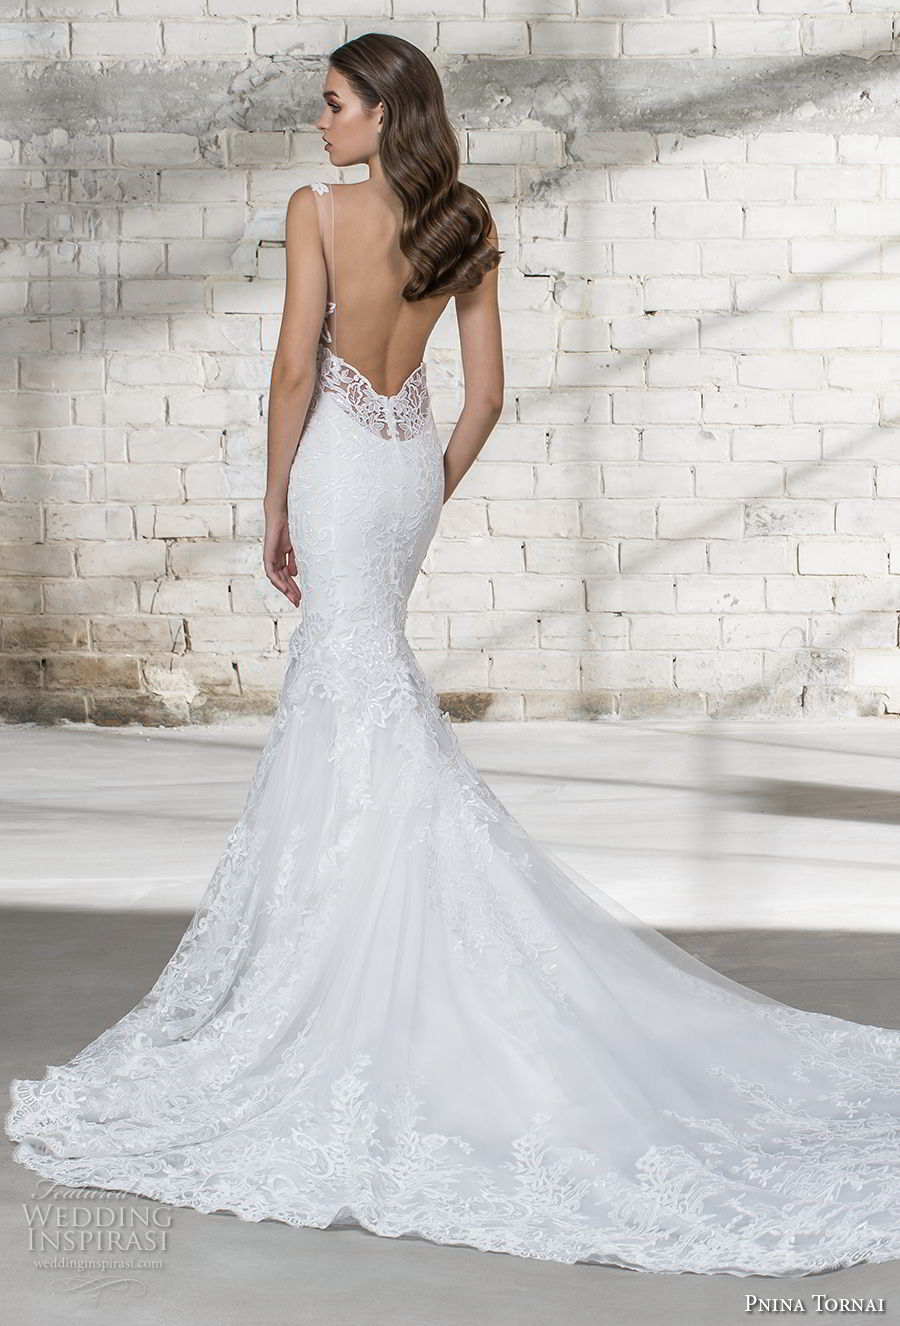 pnina tornai 2019 love bridal sleeveless deep v neck full embellishment elegant mermaid wedding dress open back chapel train (8) bv